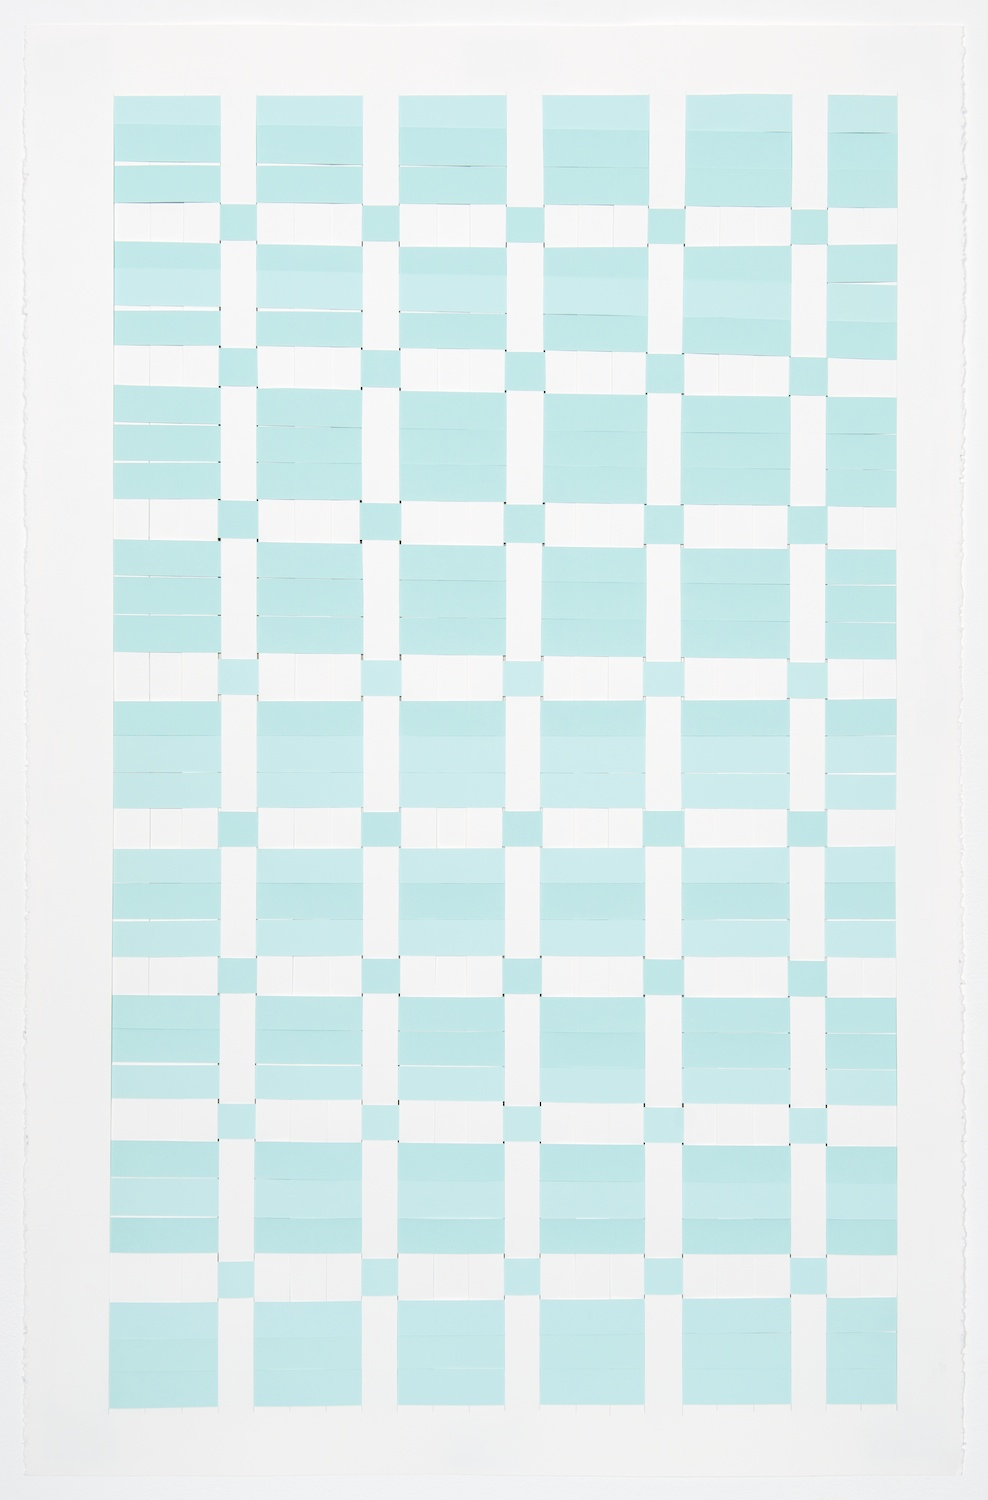 Michelle Graber  Untitled  2013 Paper and Color-aid 40h x 26w in MGrab301